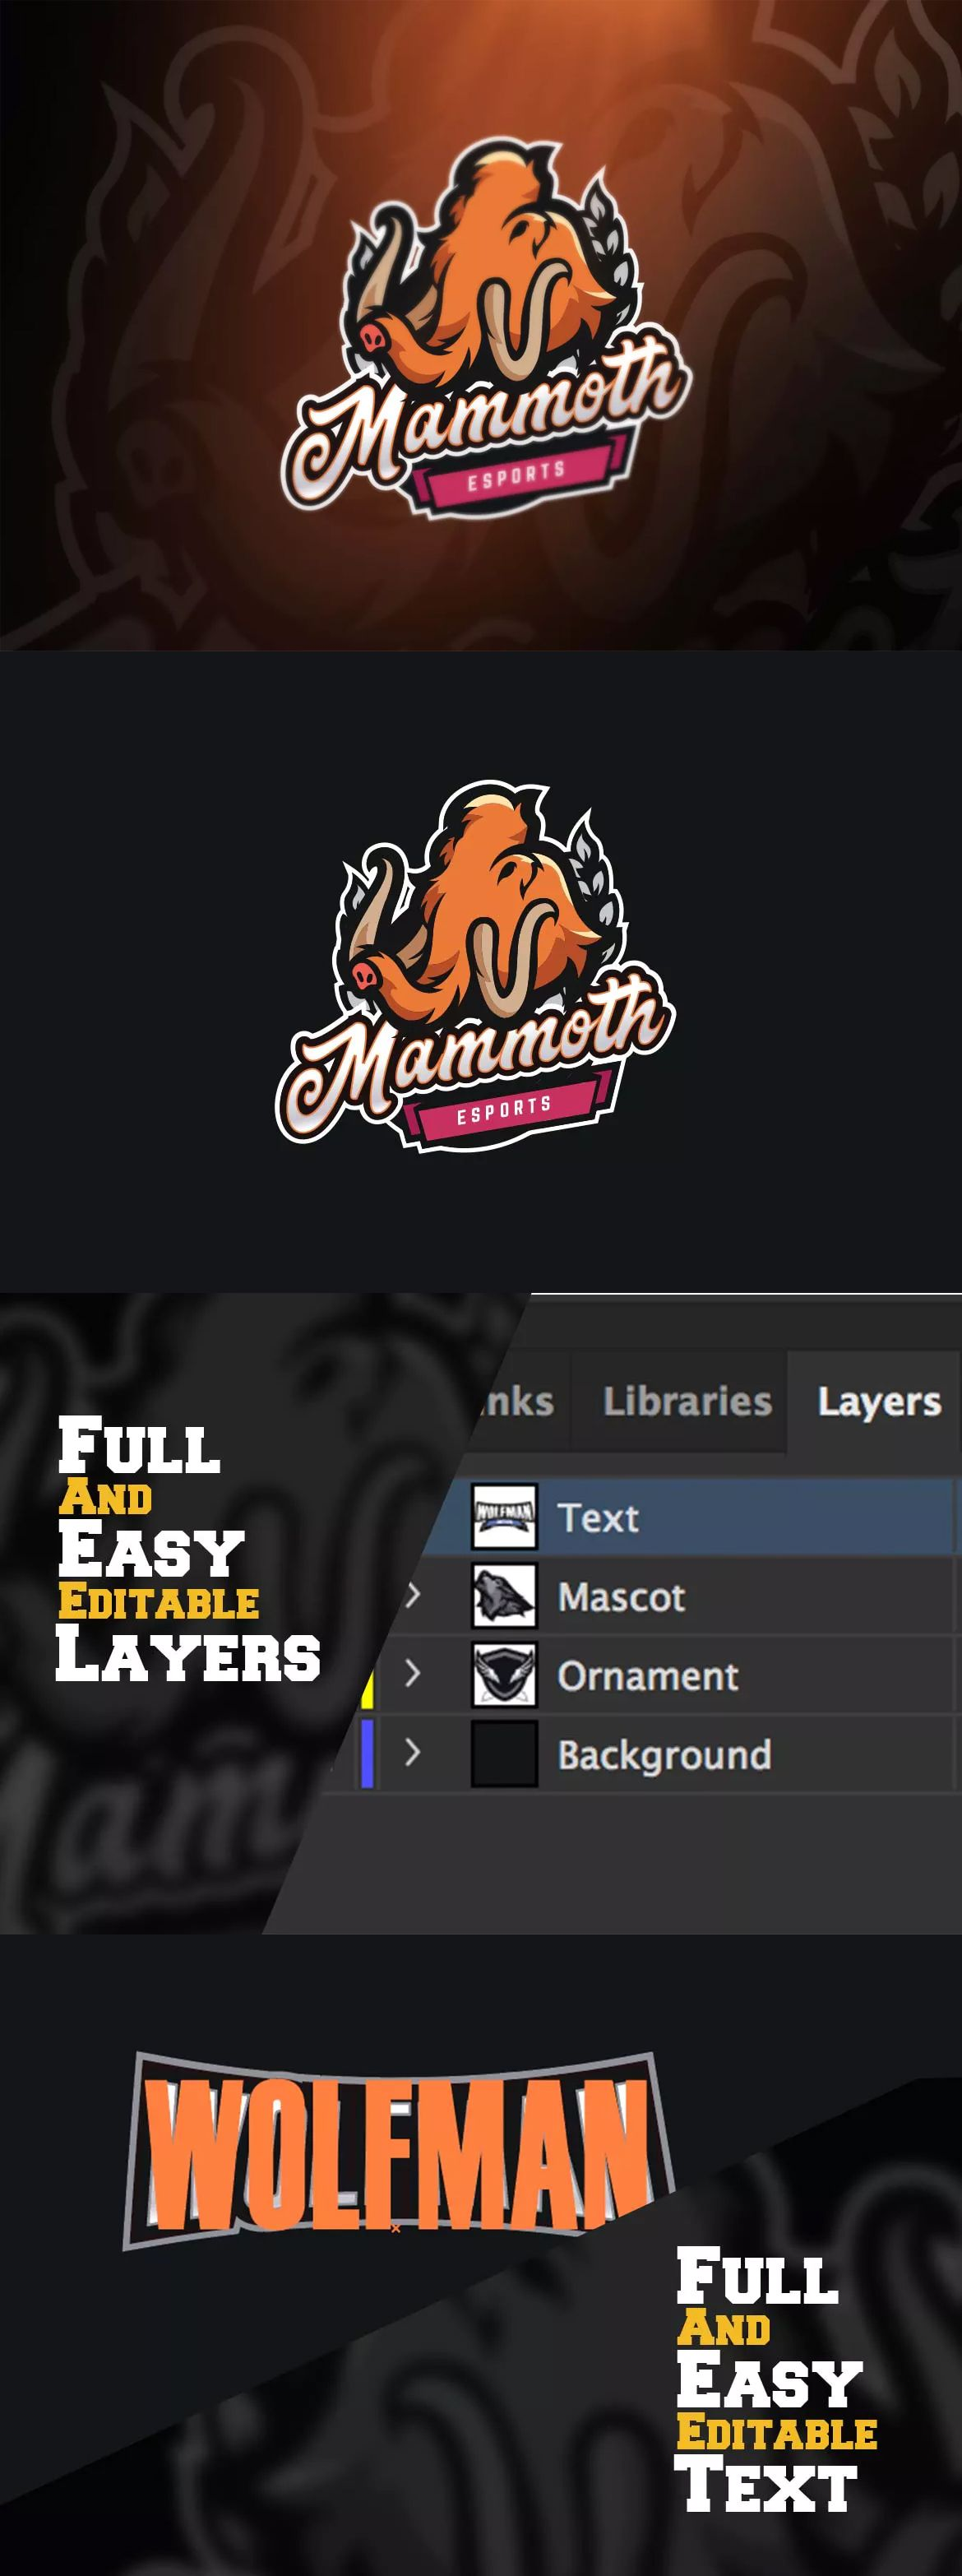 mammoth sport and esports logos template ai eps will i am axl